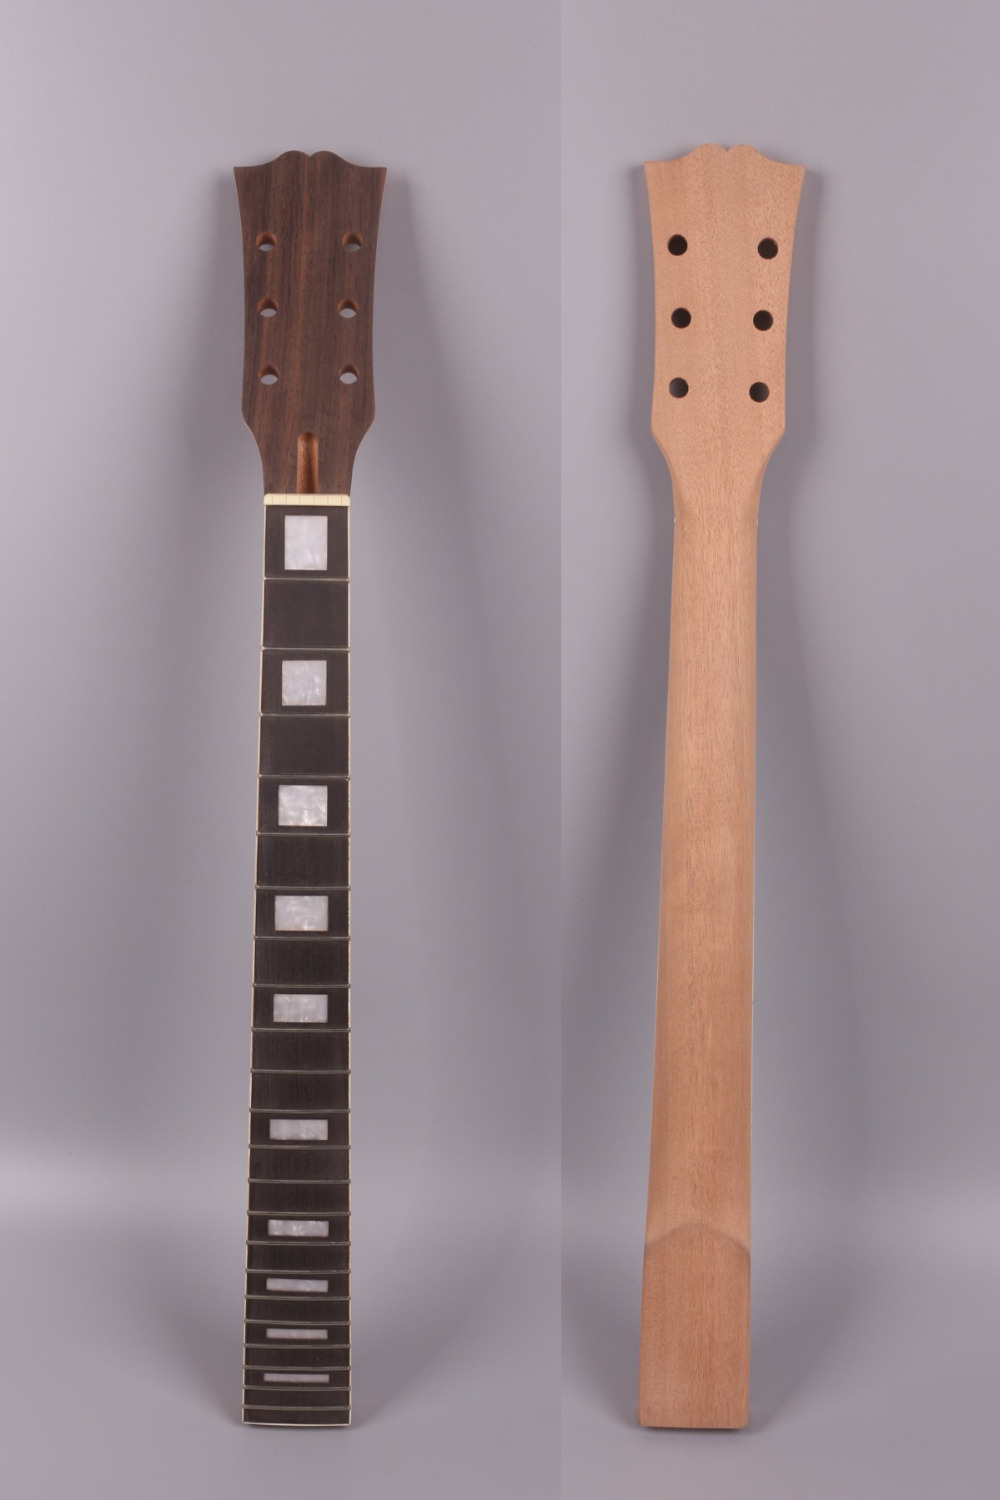 unfinishede electric  guitar neck 22 fret Locking nut 628mm mahogany  made  and  rosewood  fingerboard 004#<br>